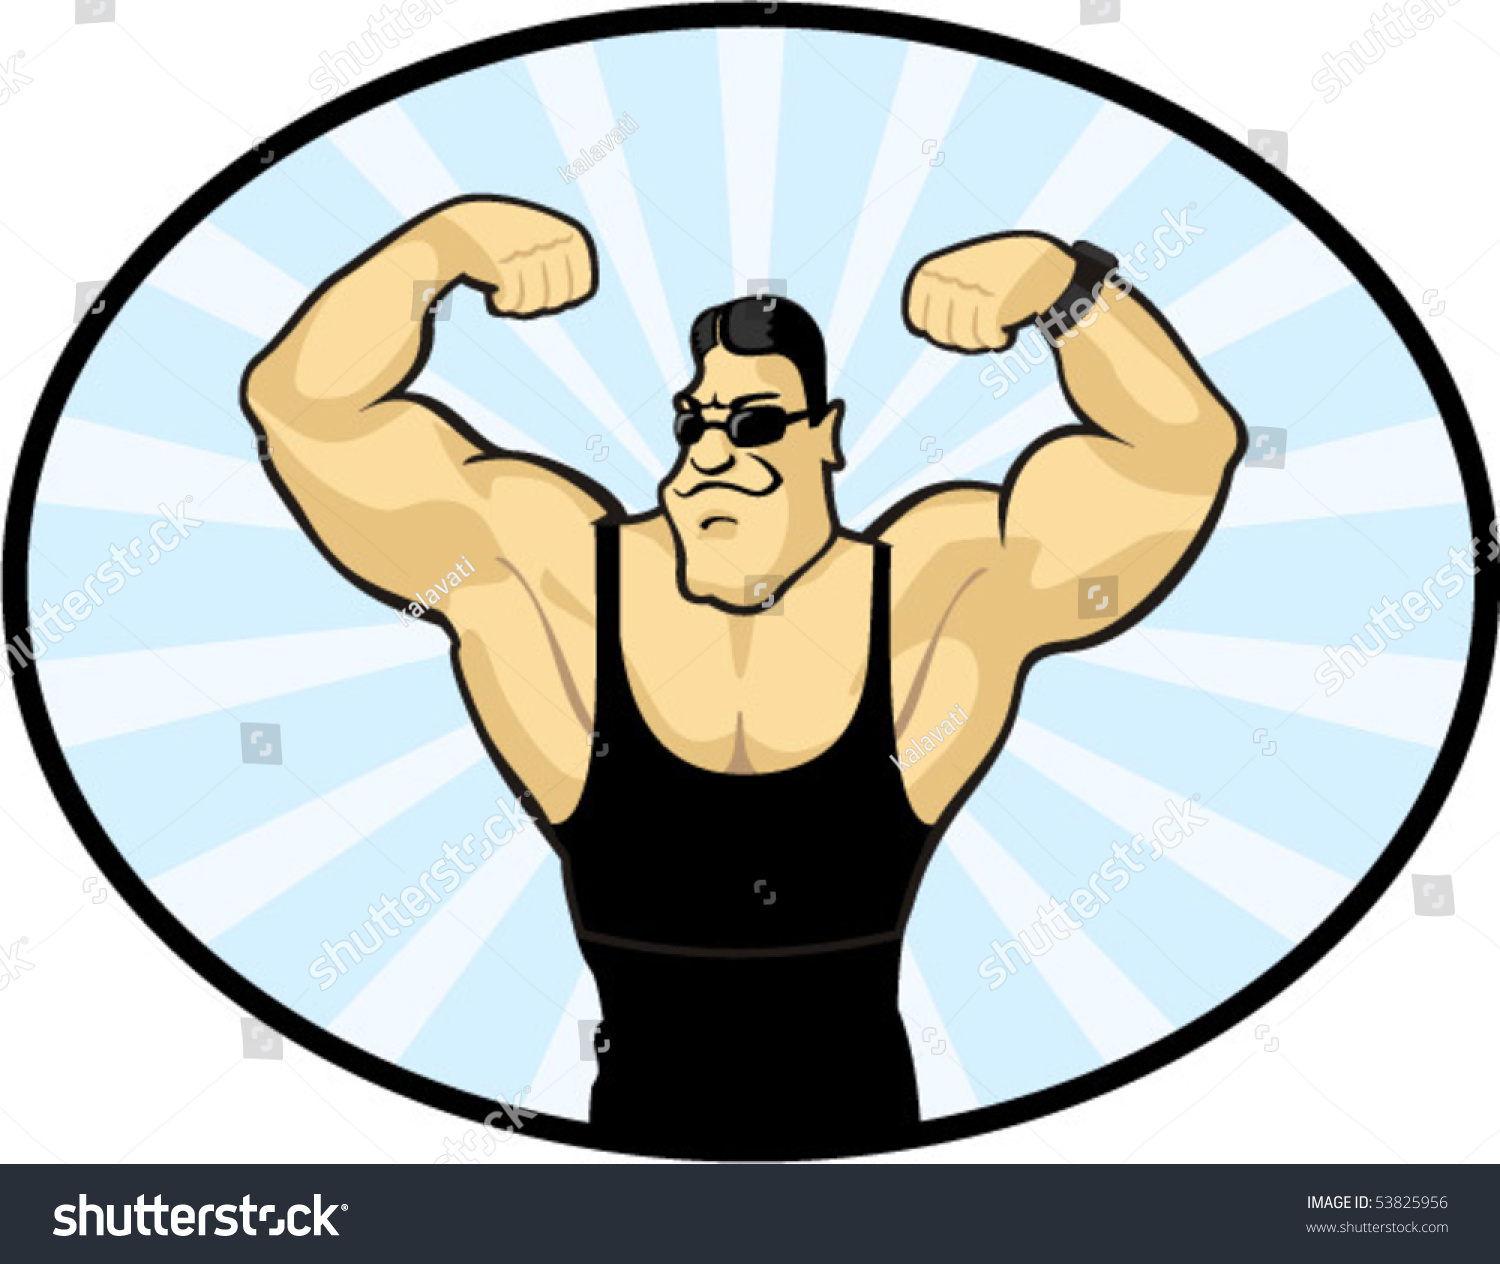 Cartoon bodybuilder stock vector 53825956 shutterstock - Cartoon body builder ...